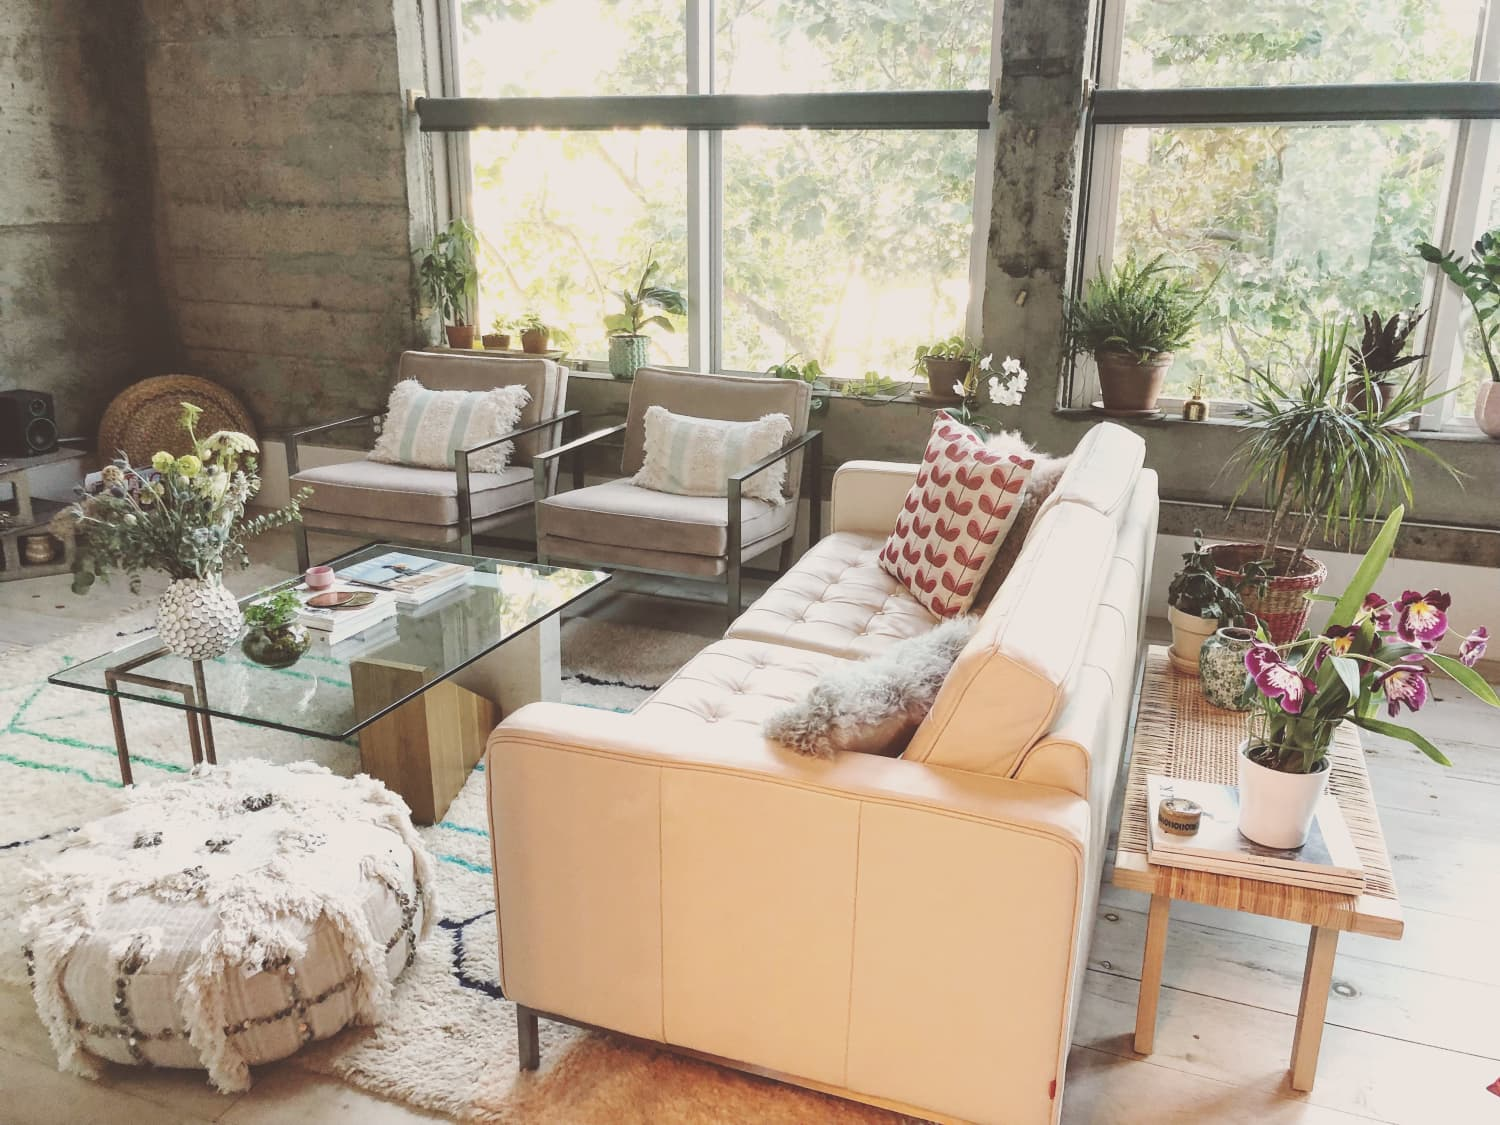 A Condo Found on Craigslist Is a Uniquely Magical, Bright Dream Rental